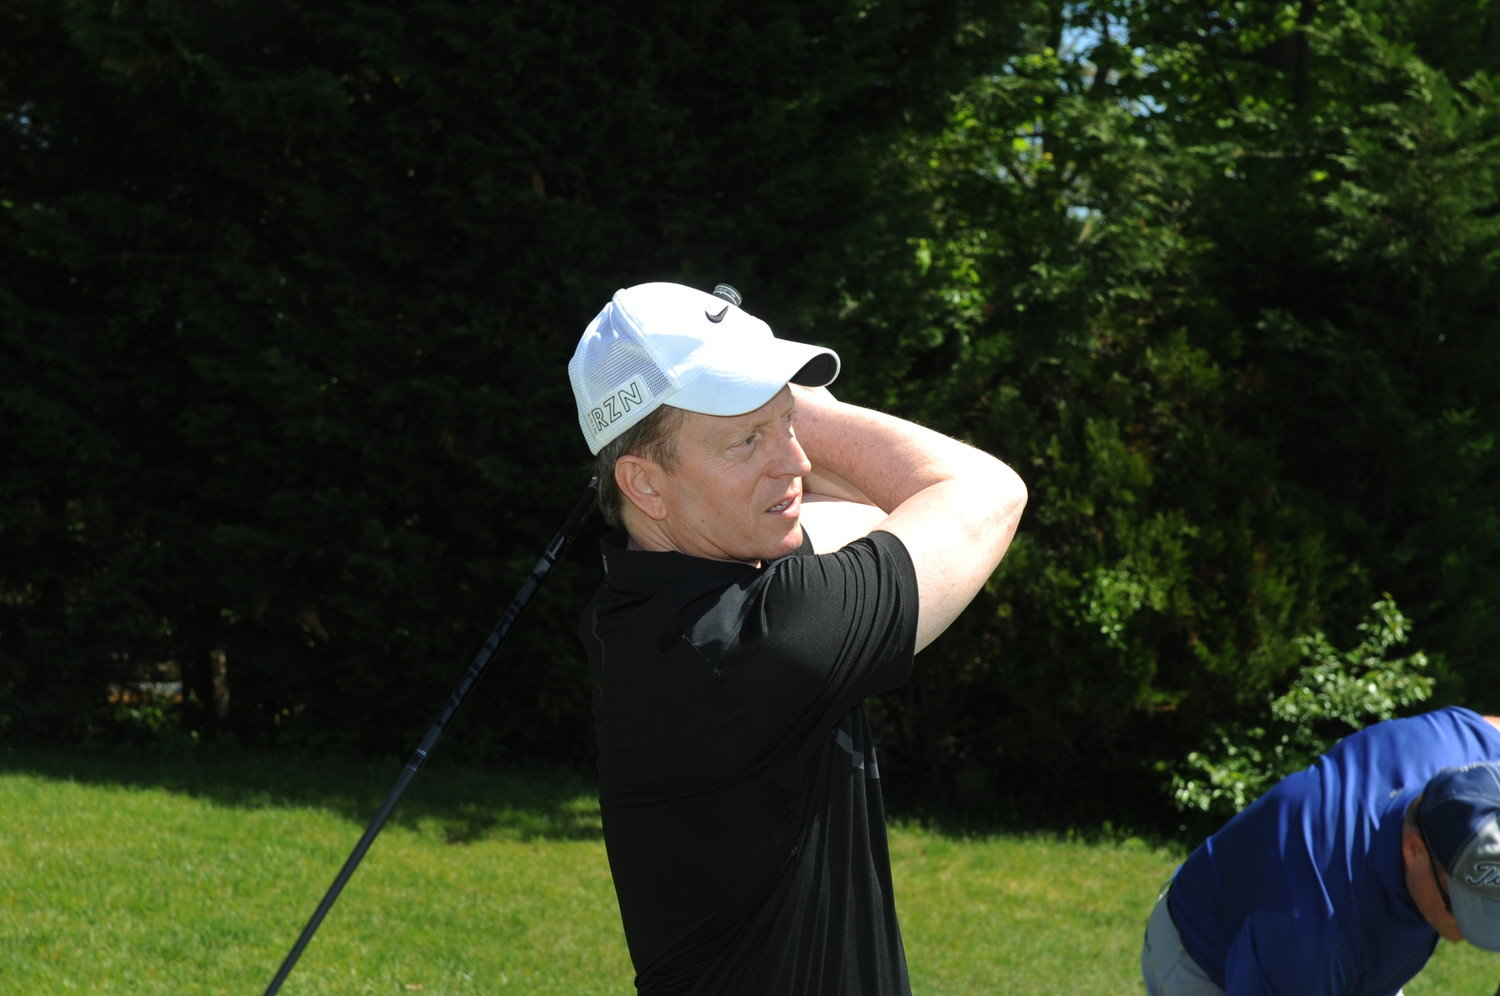 Mount Sinai South Nassau hospital has postponed its annual golf outing to Sept. 14. In 2018, board member Lowell Frey followed the flight of his shot at the event.